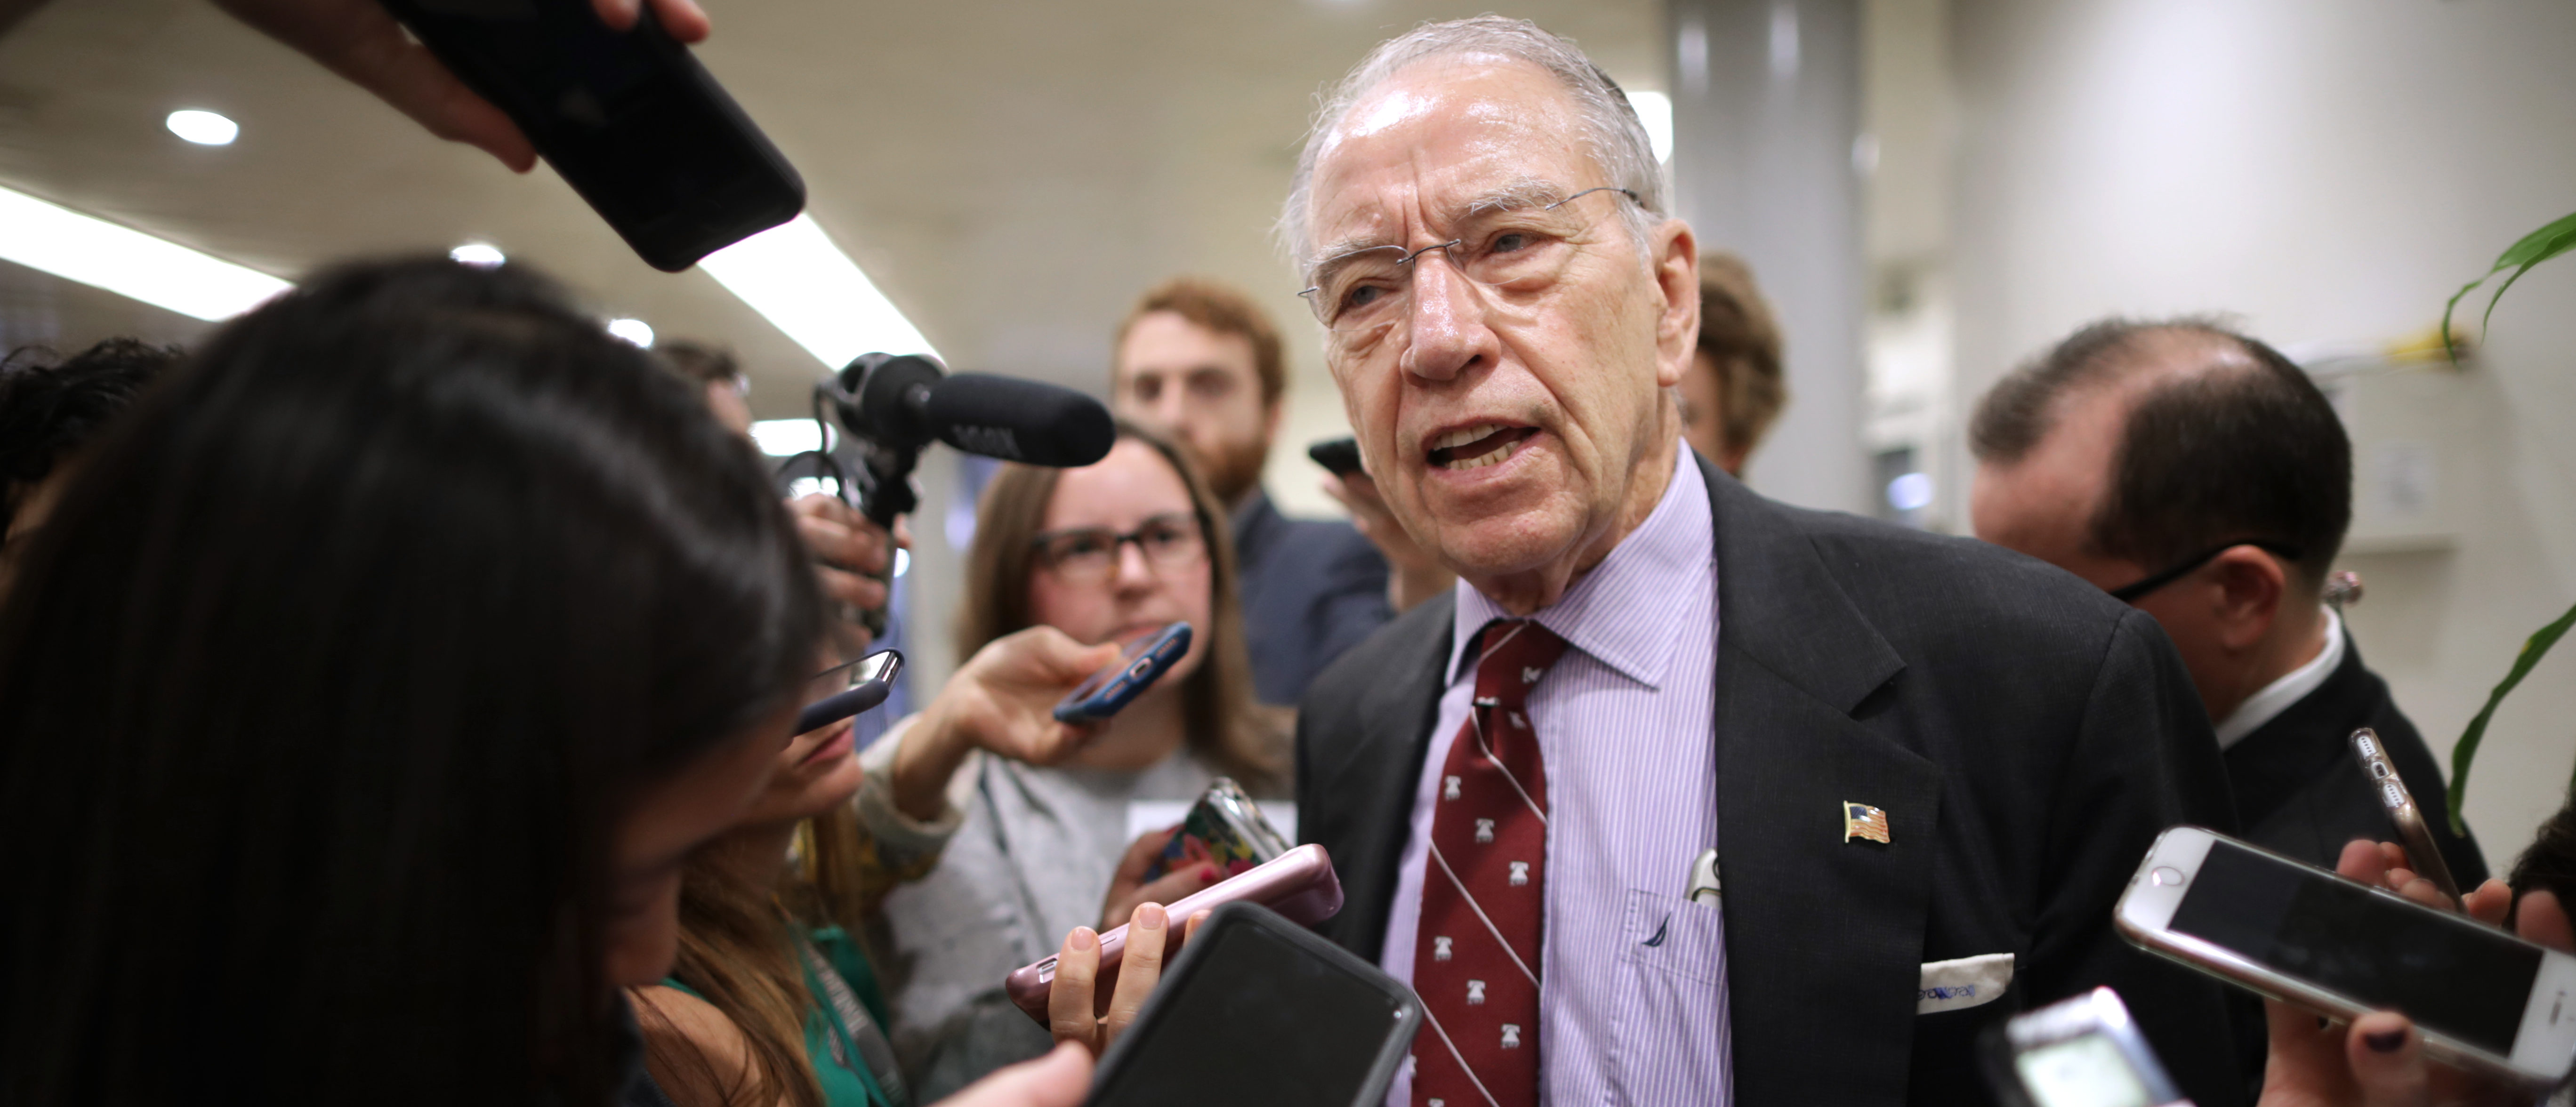 Senate Judiciary Committee Chairman Chuck Grassley (R-IA) talks with reporters as he heads for a meeting at the U.S. Capitol October 02, 2018 in Washington, D.C. (Photo by Chip Somodevilla/Getty Images)